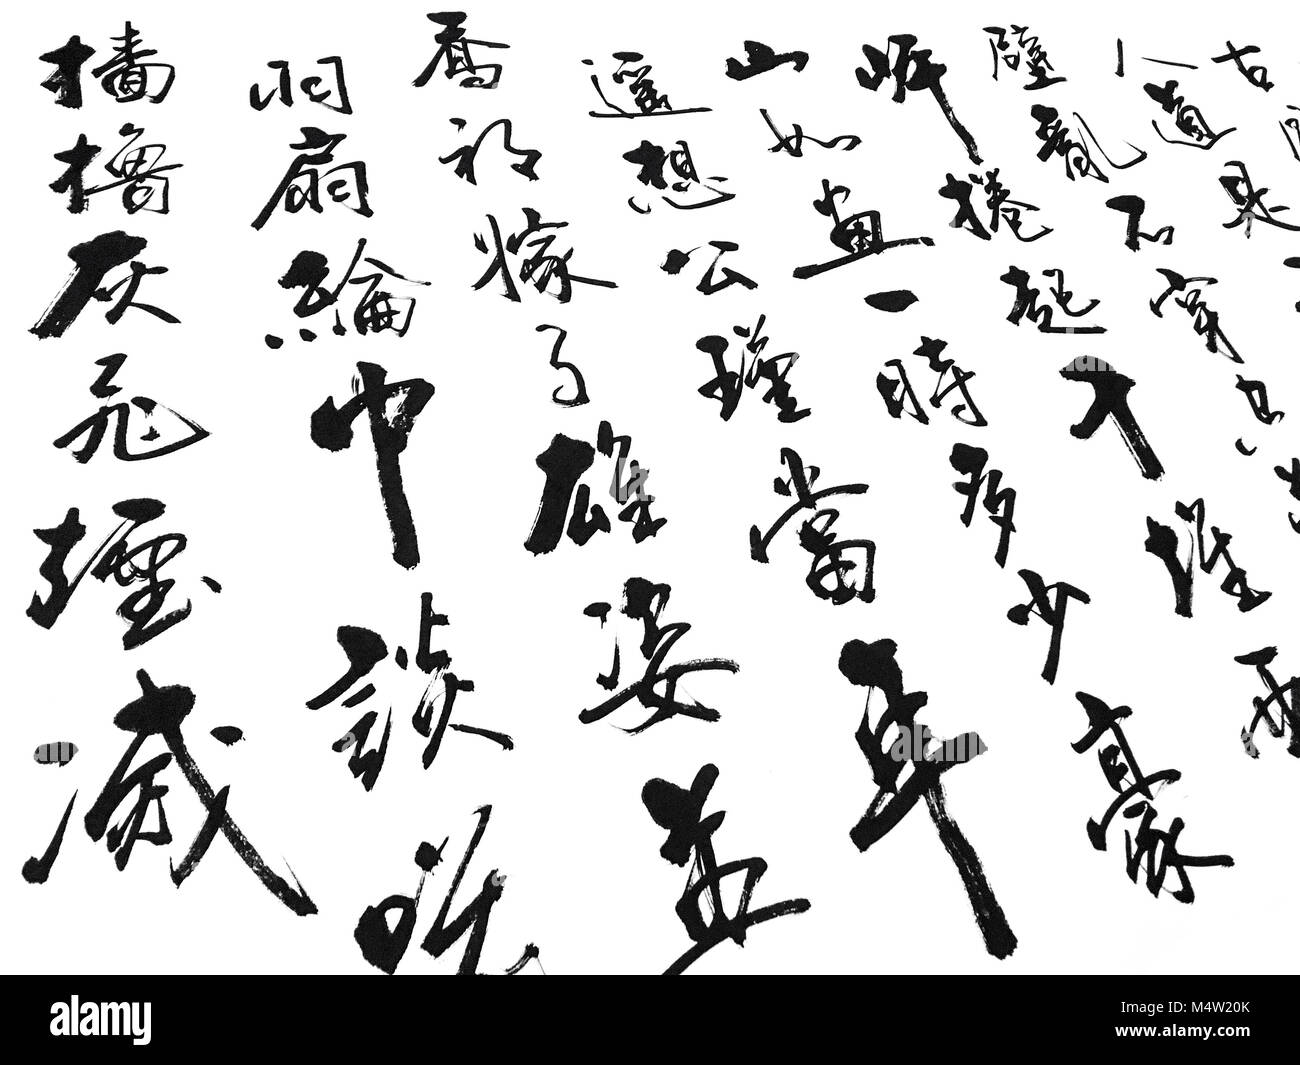 chinese technique stock photos chinese technique stock images alamy 1920s American Man a picture of a paper with many traditional chinese symbols written by a calligraphy technique